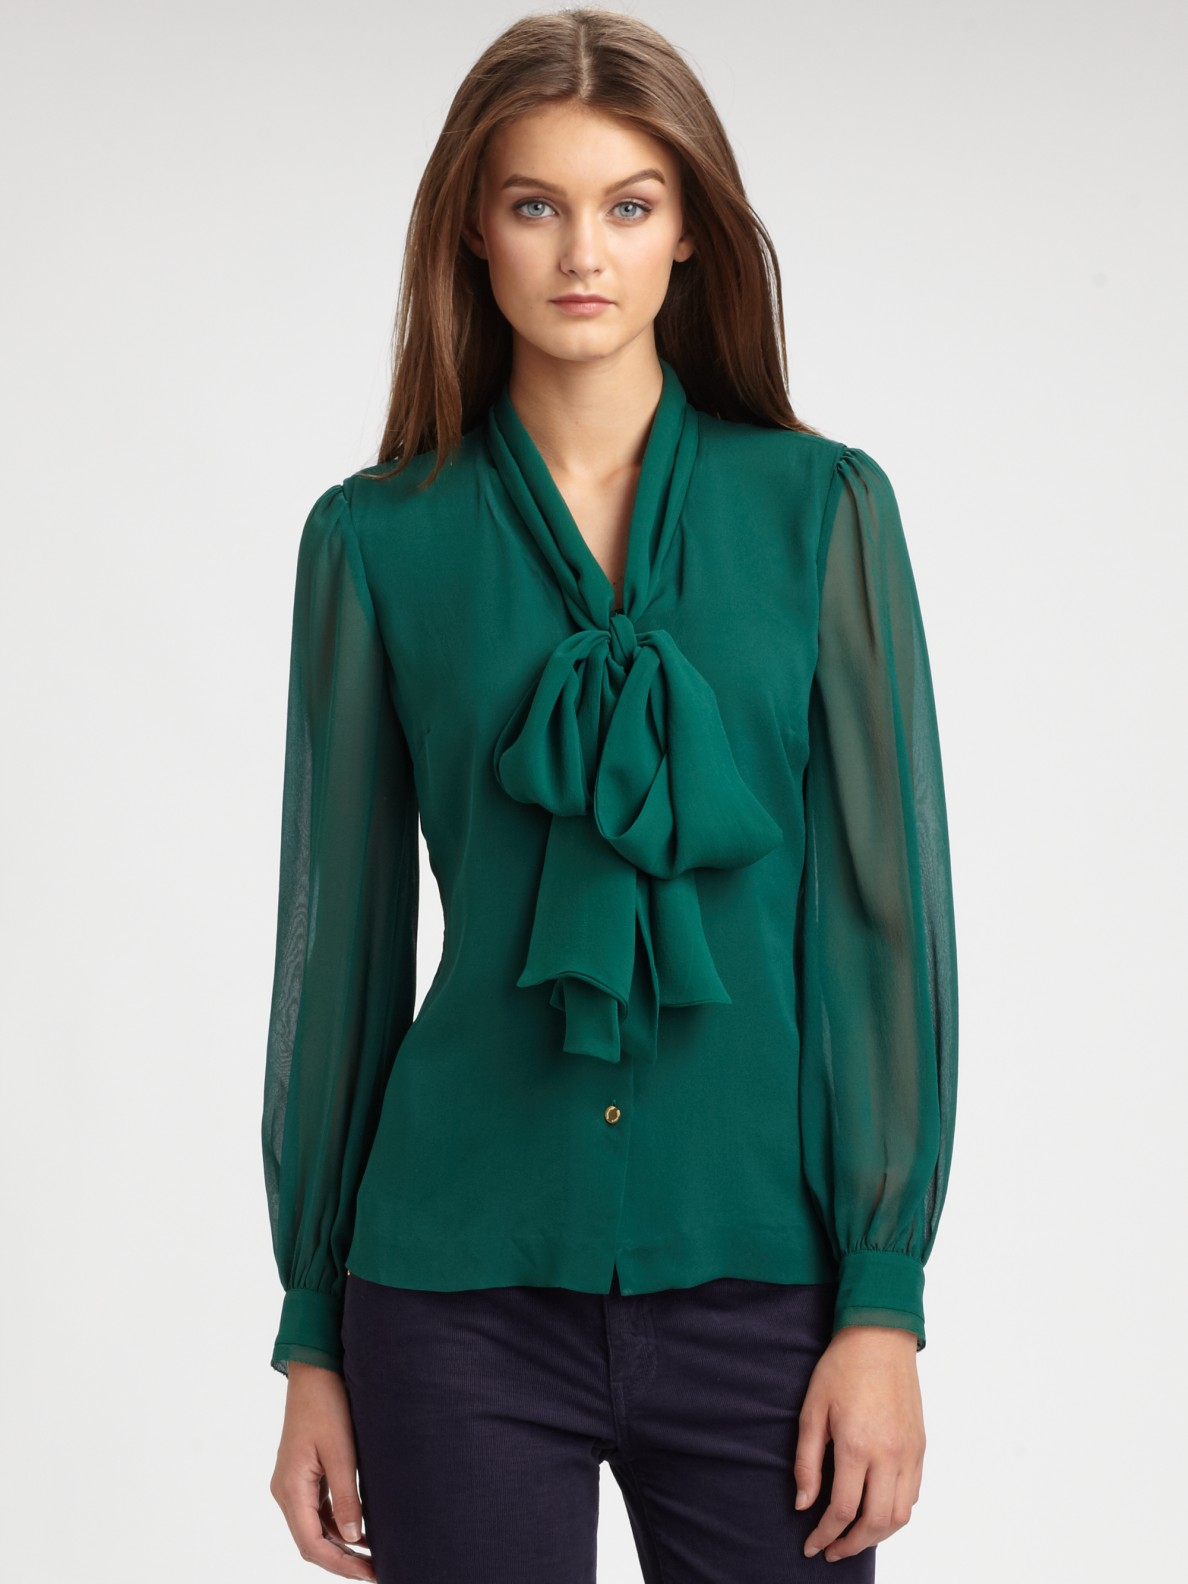 Tory burch Silk Bryce Blouse in Green | Lyst